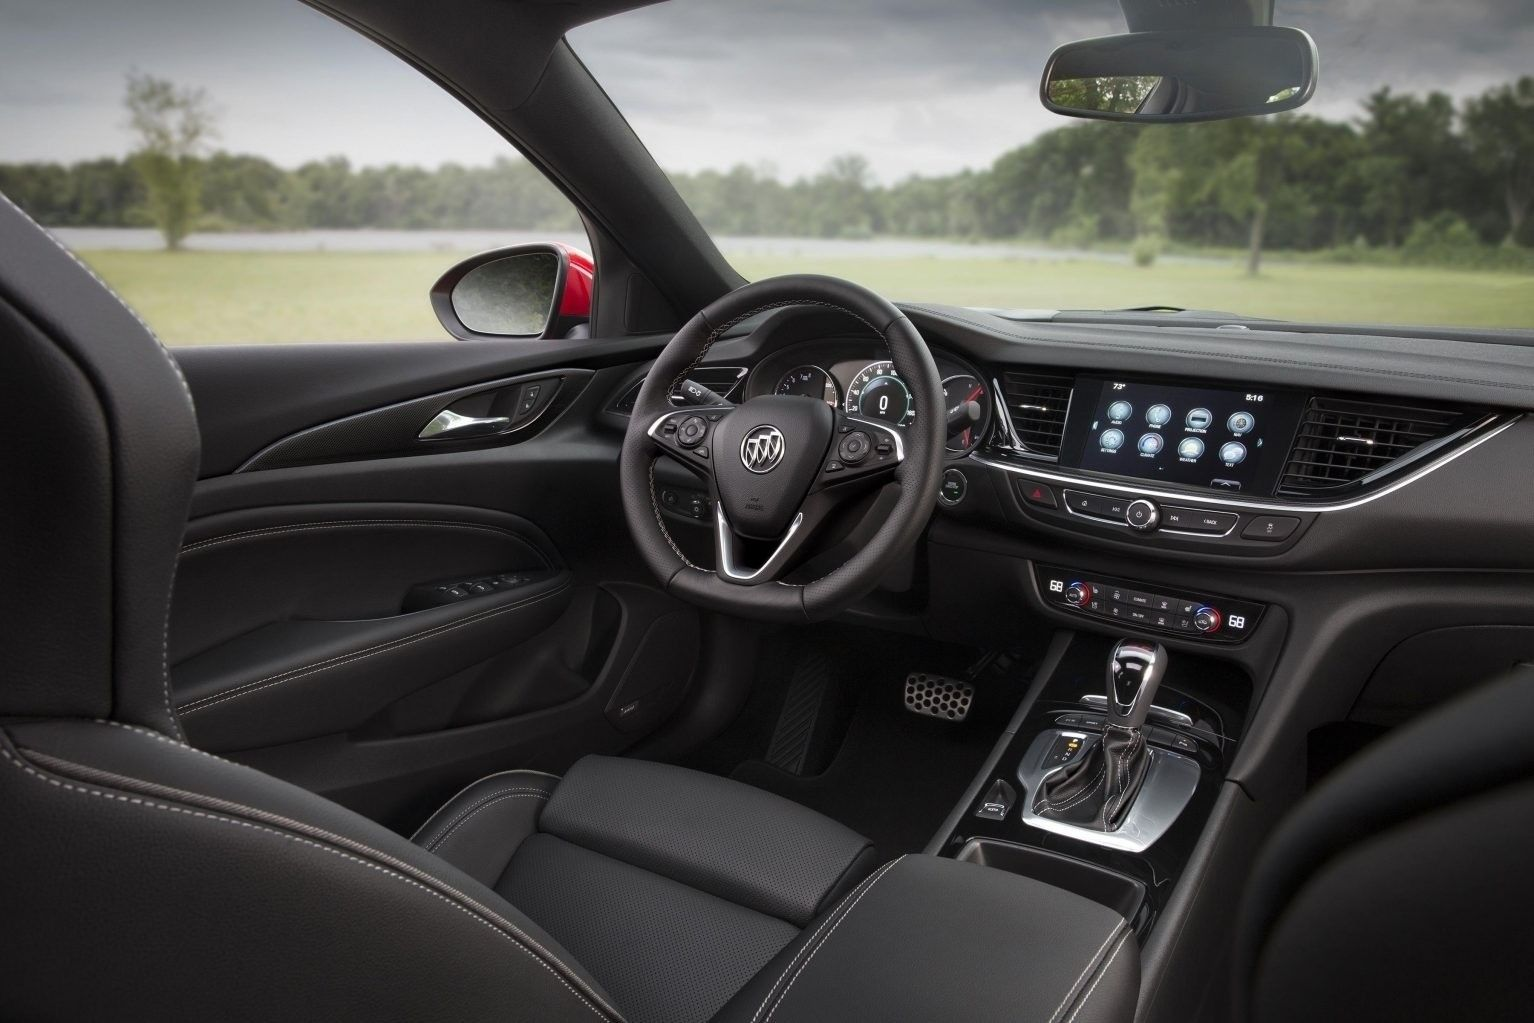 All 2019 Buick Verano Interior Exterior And Review Buick Regal Gs Buick Regal Buick Verano